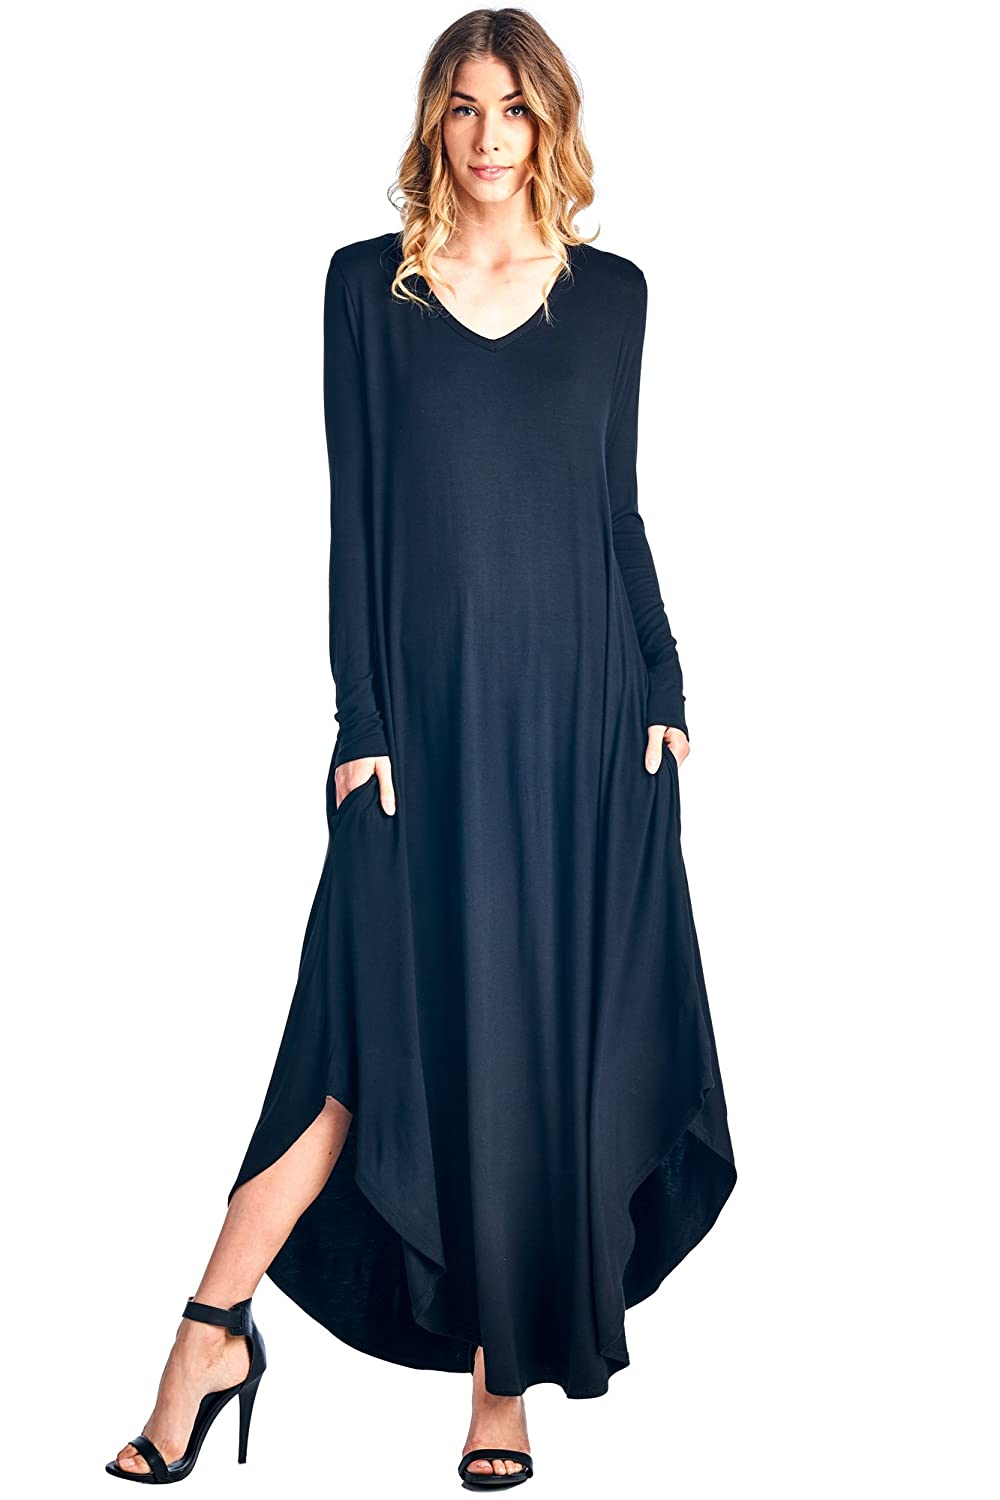 12 Ami Curved Hem V-Neck Long Sleeve Maxi Dress - Made in USA